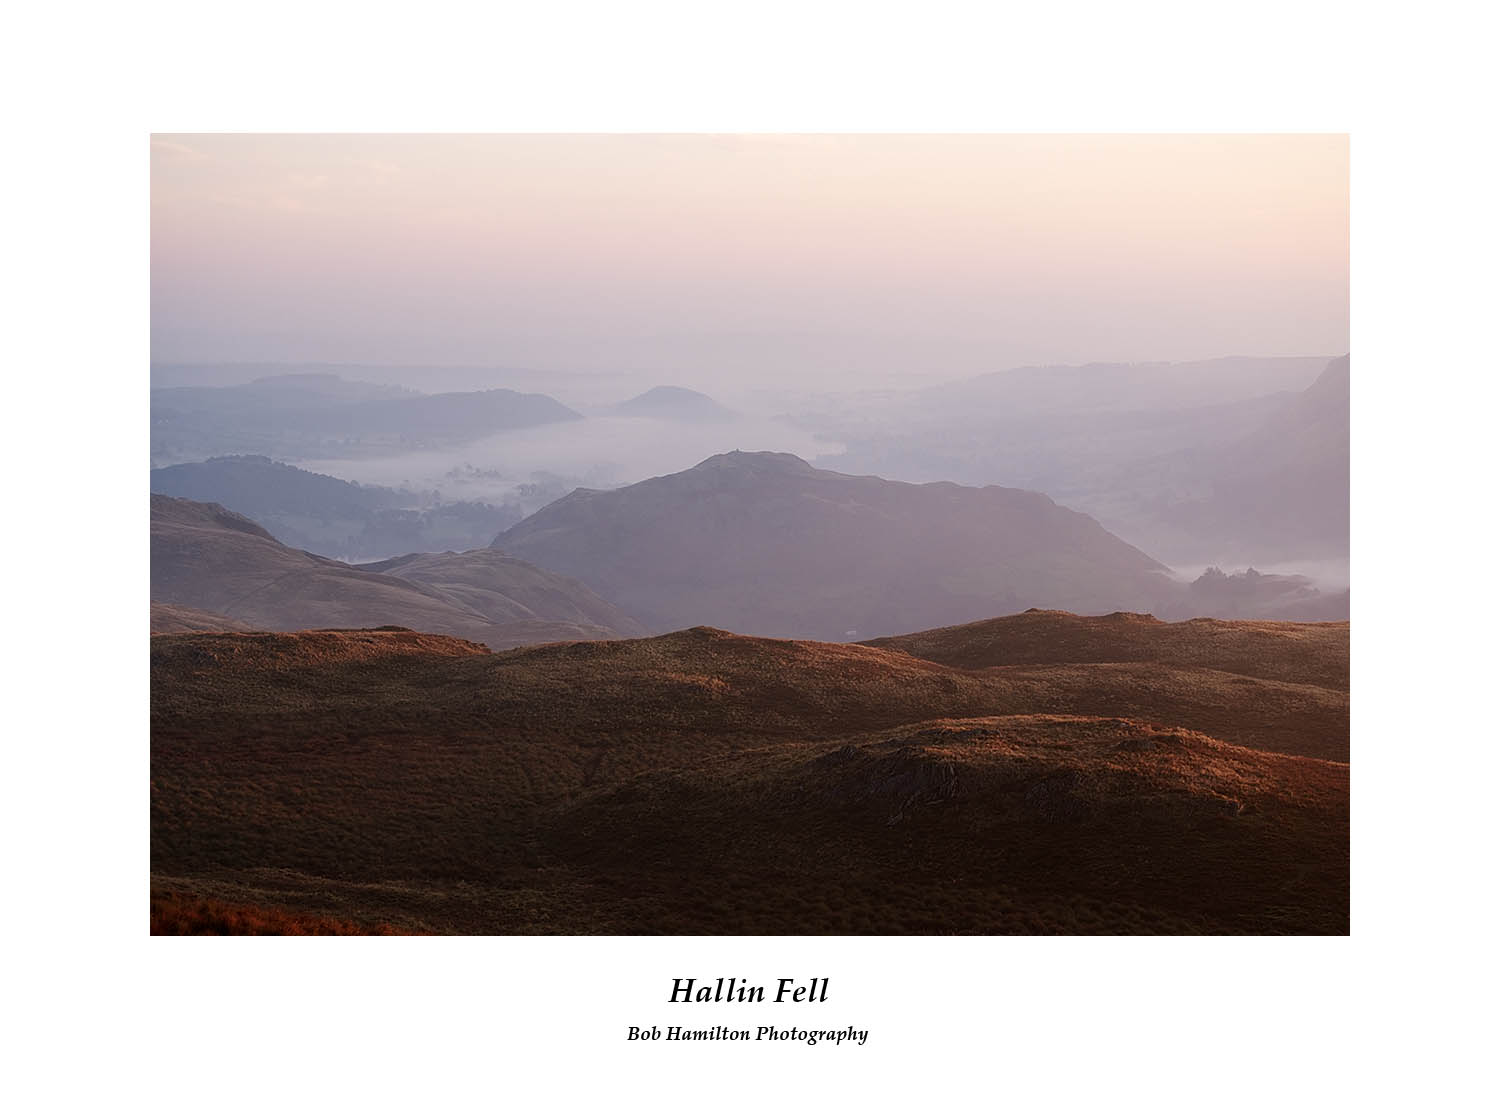 DSF1347 Daybreak on Hallin Fell and Ullswater from Place Fell